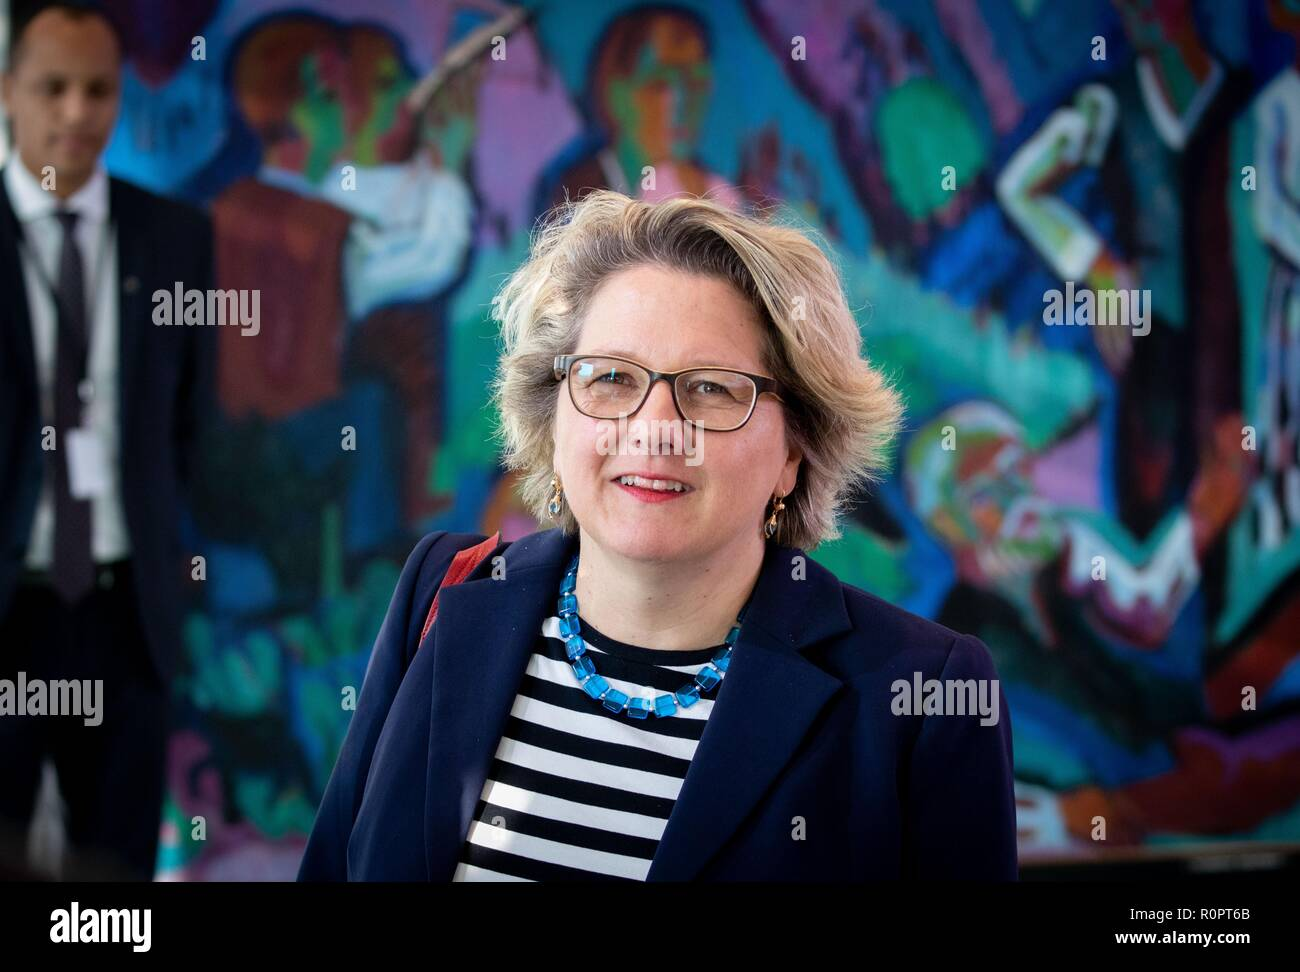 Berlin, Germany. 07th Nov, 2018. Svenja Schulze (SPD), Federal Minister for the Environment, Nature Conservation and Nuclear Safety, attends the Federal Cabinet meeting at the Federal Chancellery. Credit: Kay Nietfeld/dpa/Alamy Live News - Stock Image